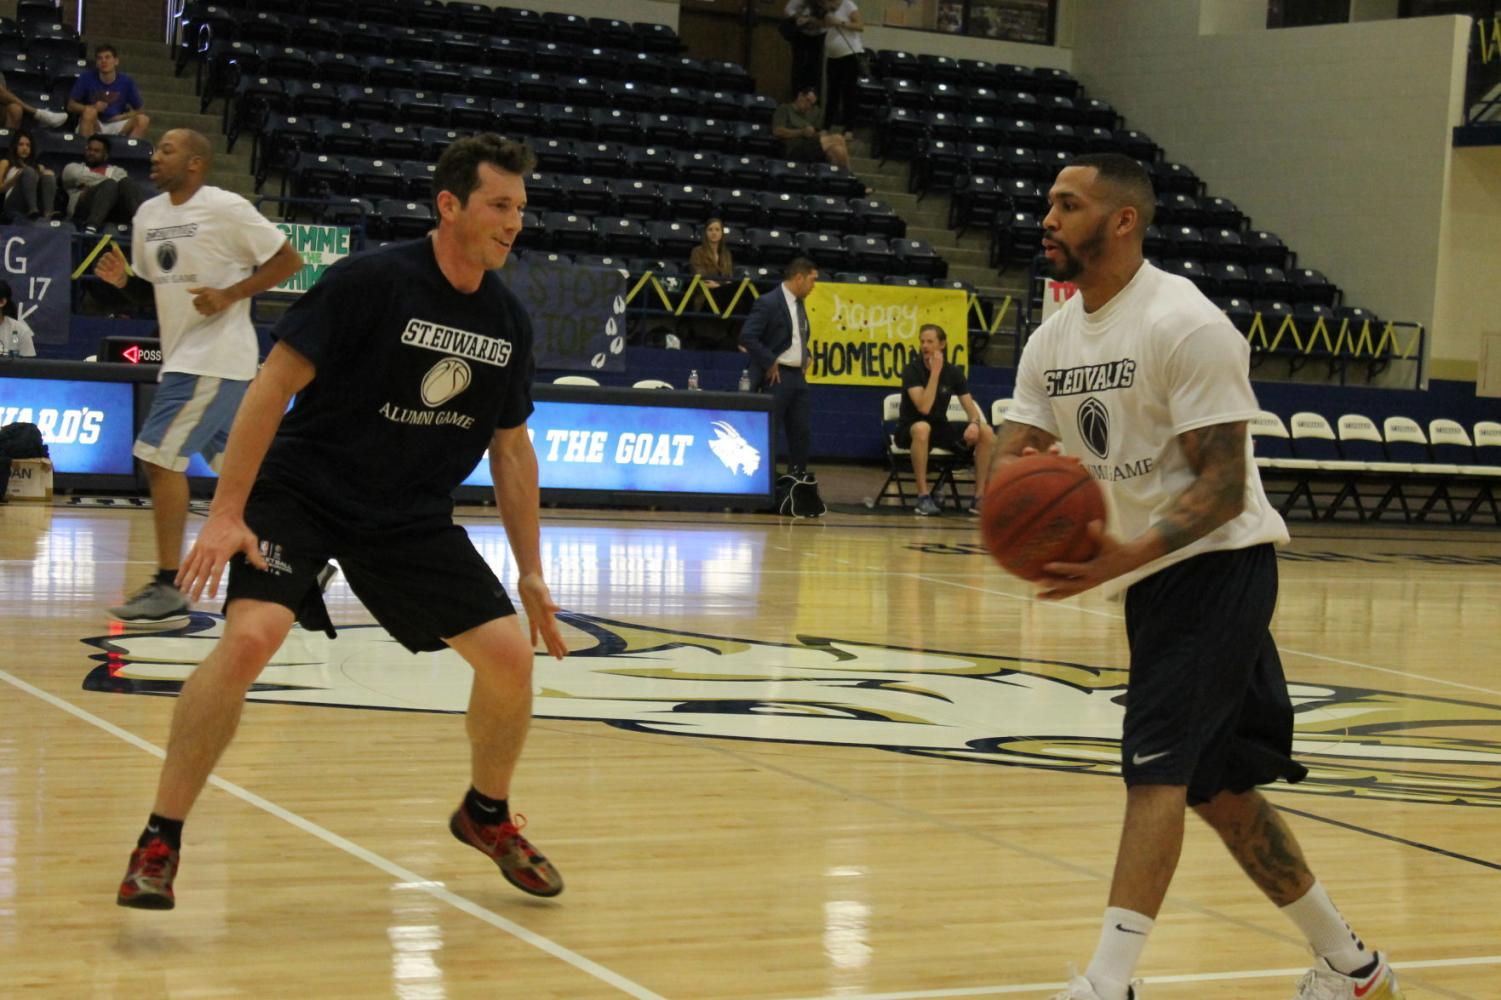 Taylor Land (left) guards John Rutherford (right) at the men's basketball alumni game Feb. 18.